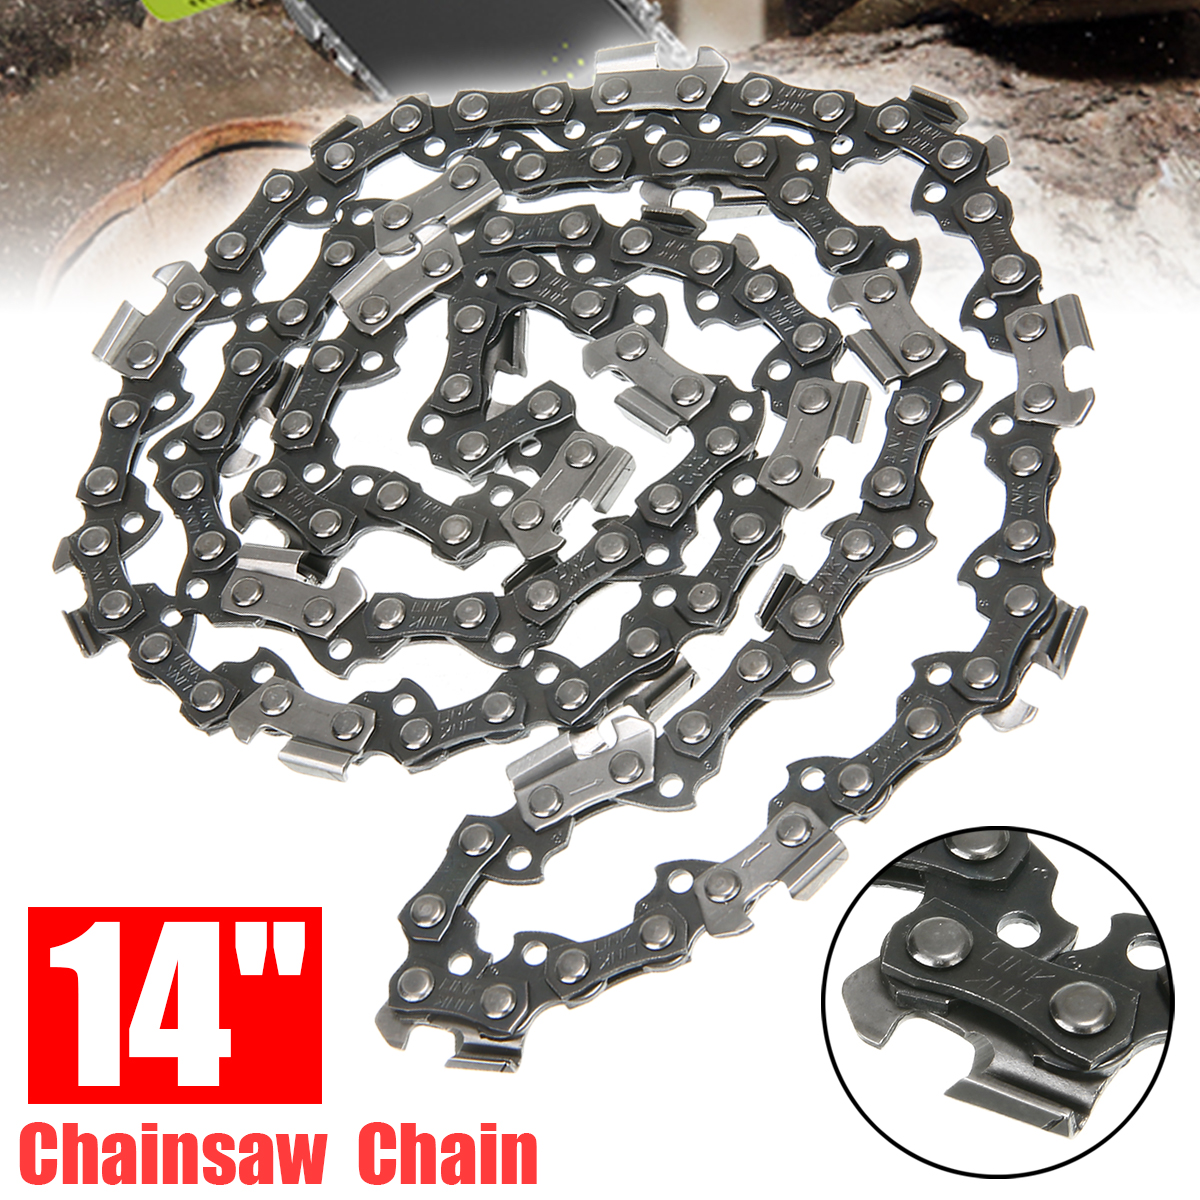 14/'/' Chainsaw Saw Chain Blade 3//8/'/' LP For Stihl 009 010 017 019 023 MS170 MS180